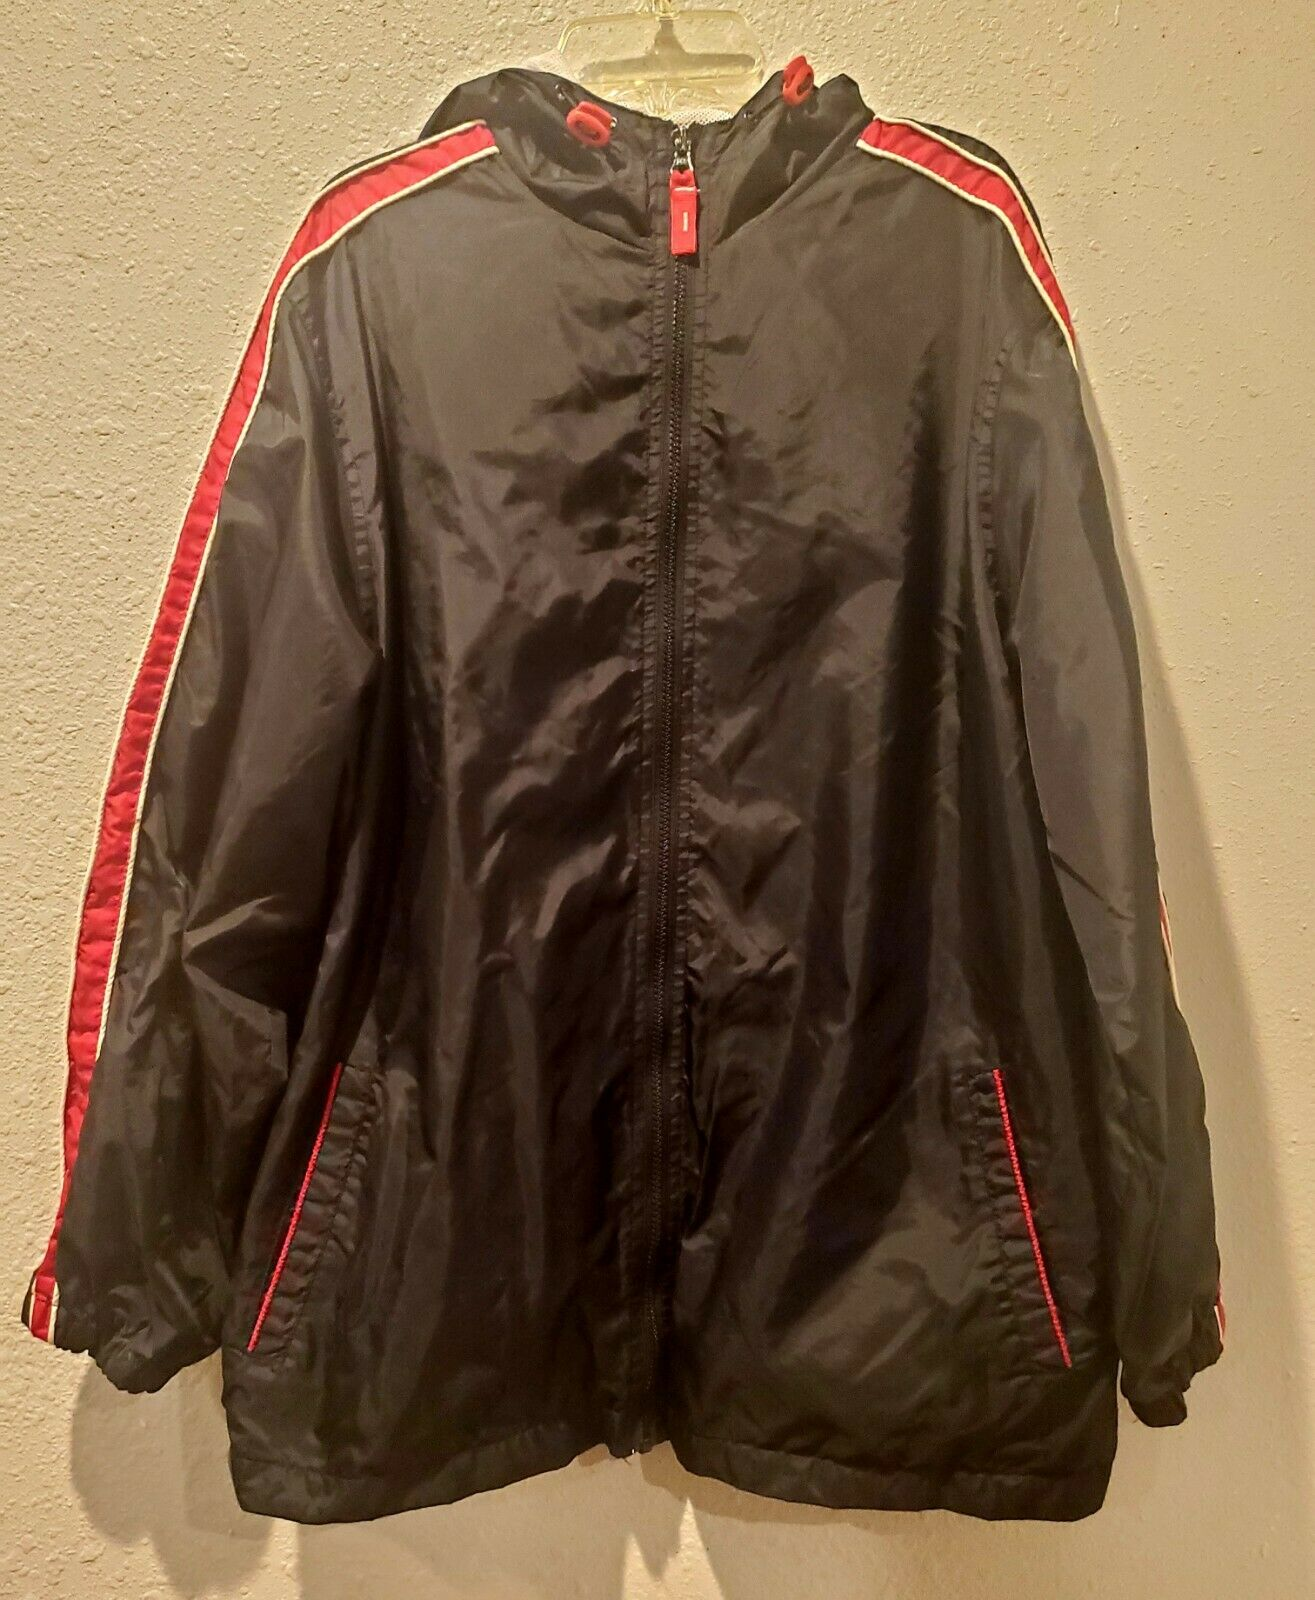 Avenue hooded wind Jacket 14/16 womens plus size black / red , zippered pockets